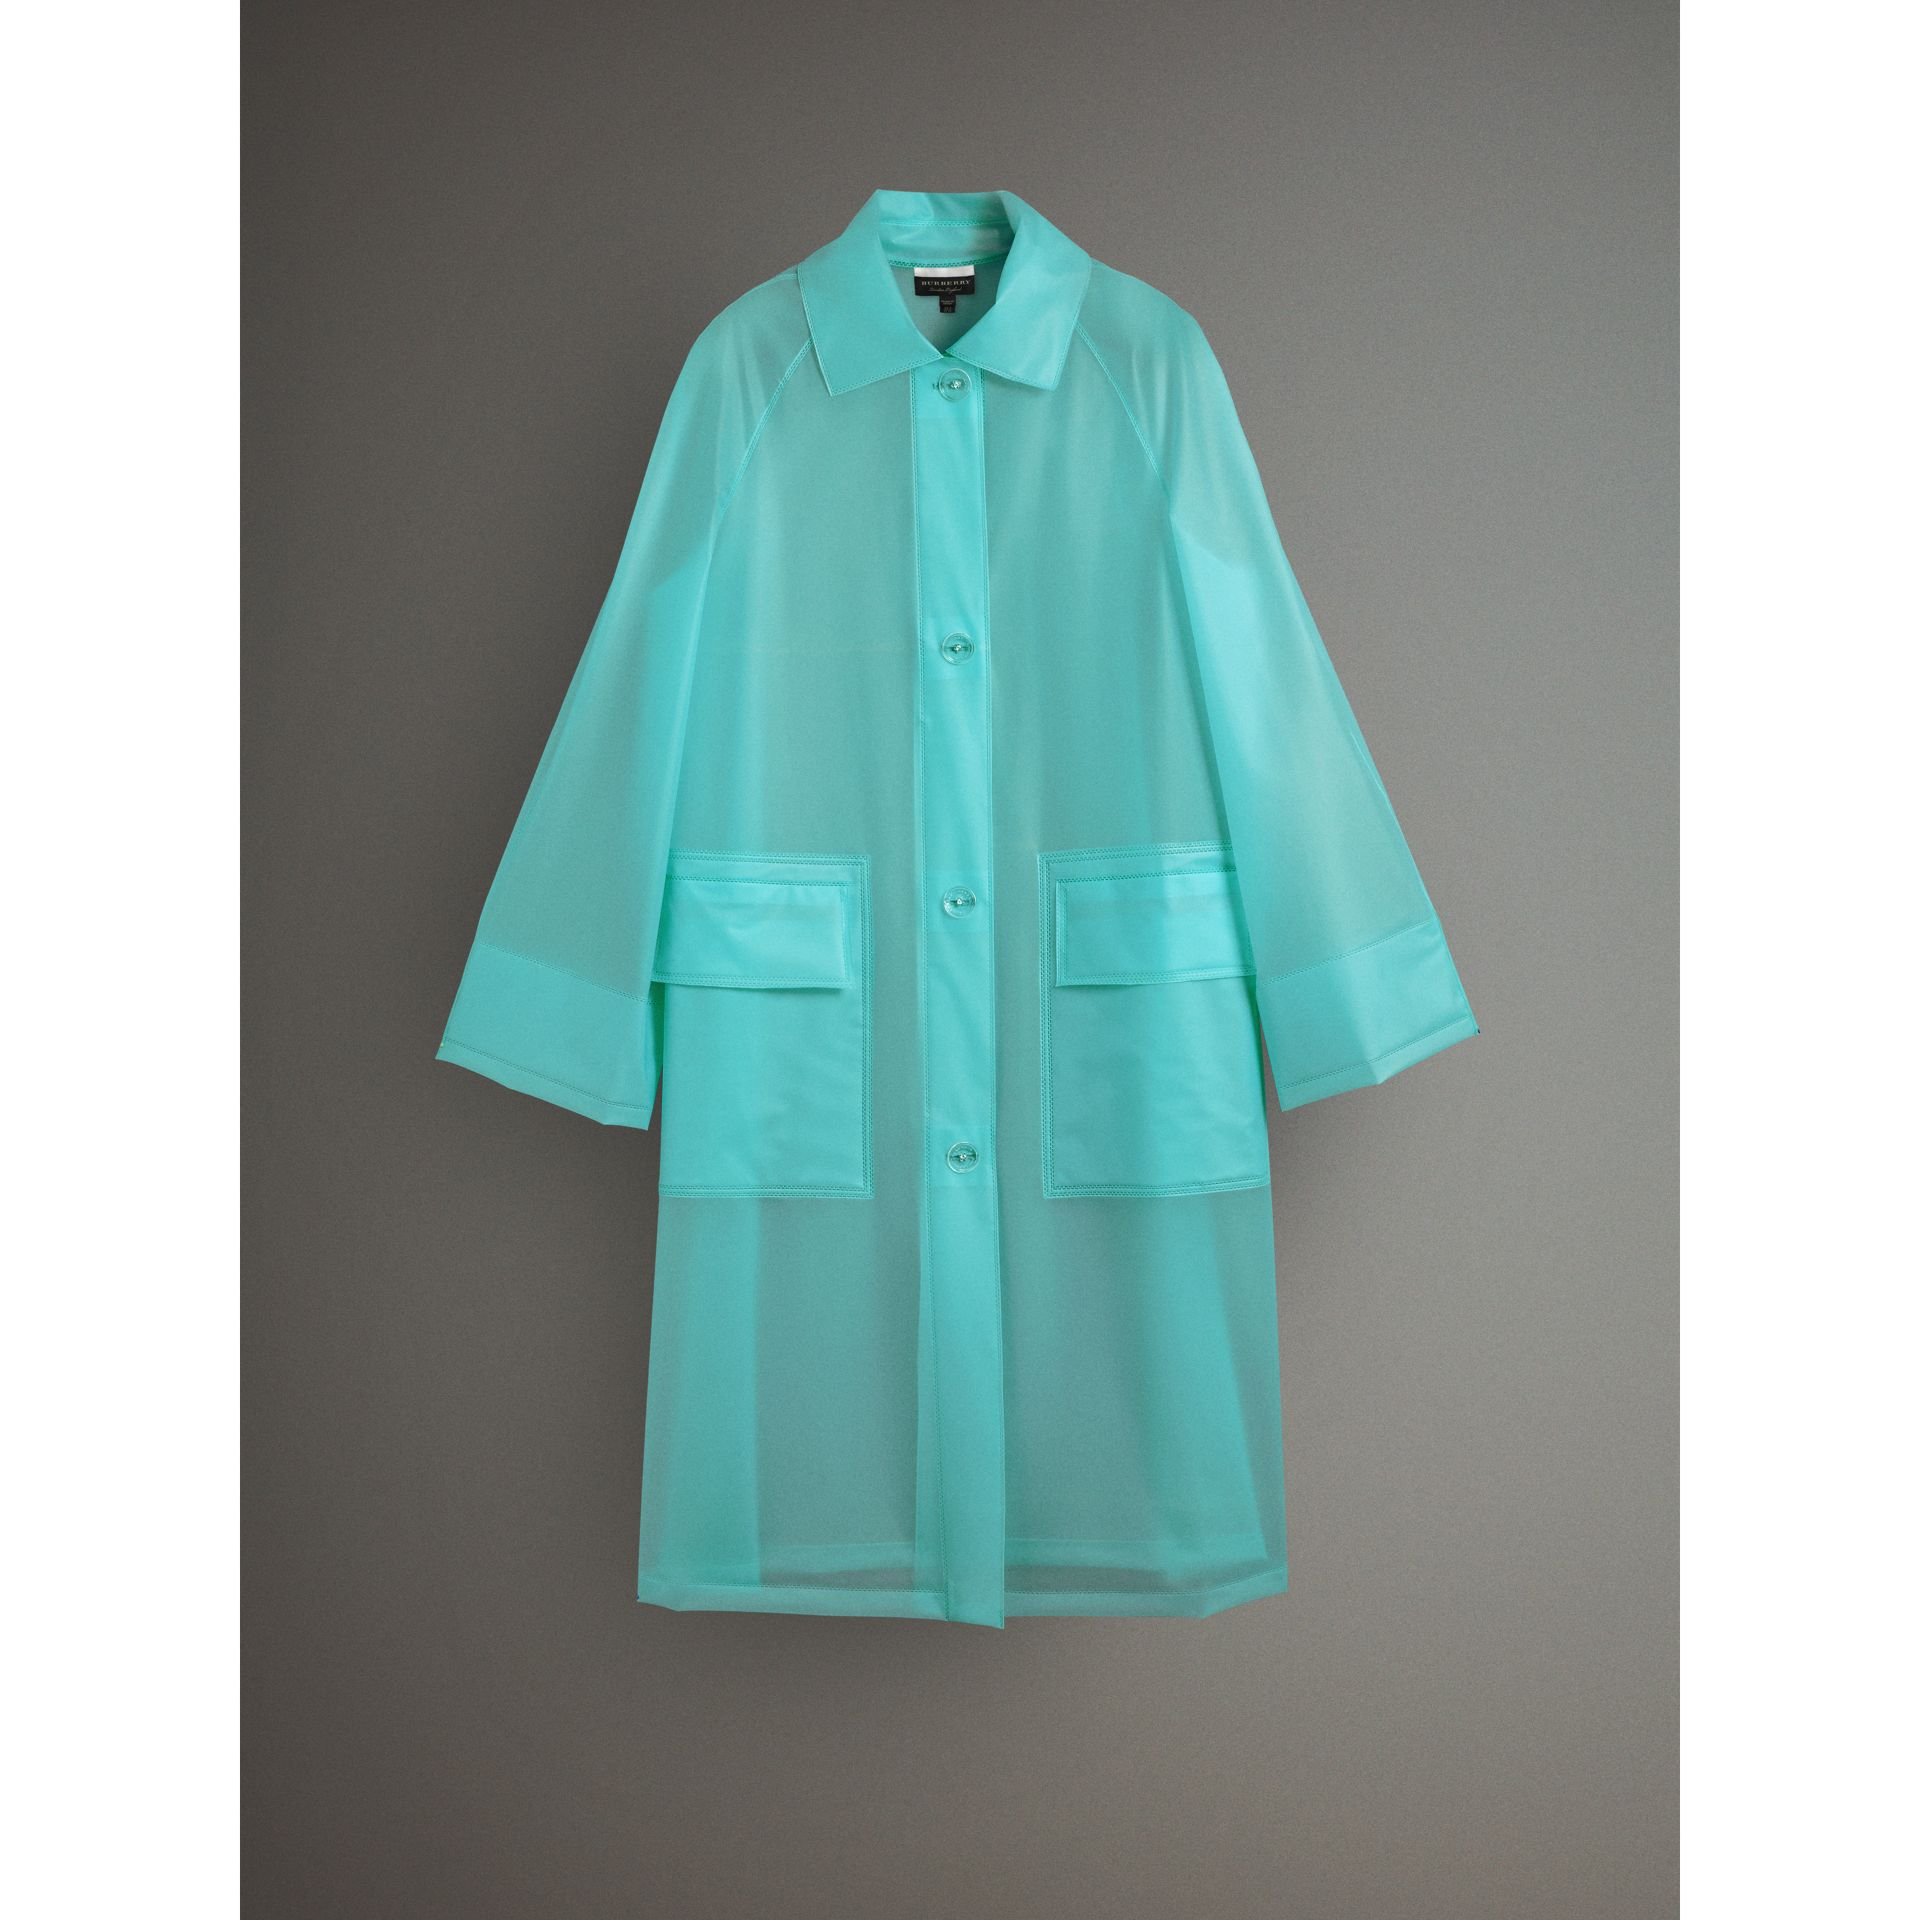 Soft-touch Plastic Car Coat in Turquoise - Women | Burberry - gallery image 4